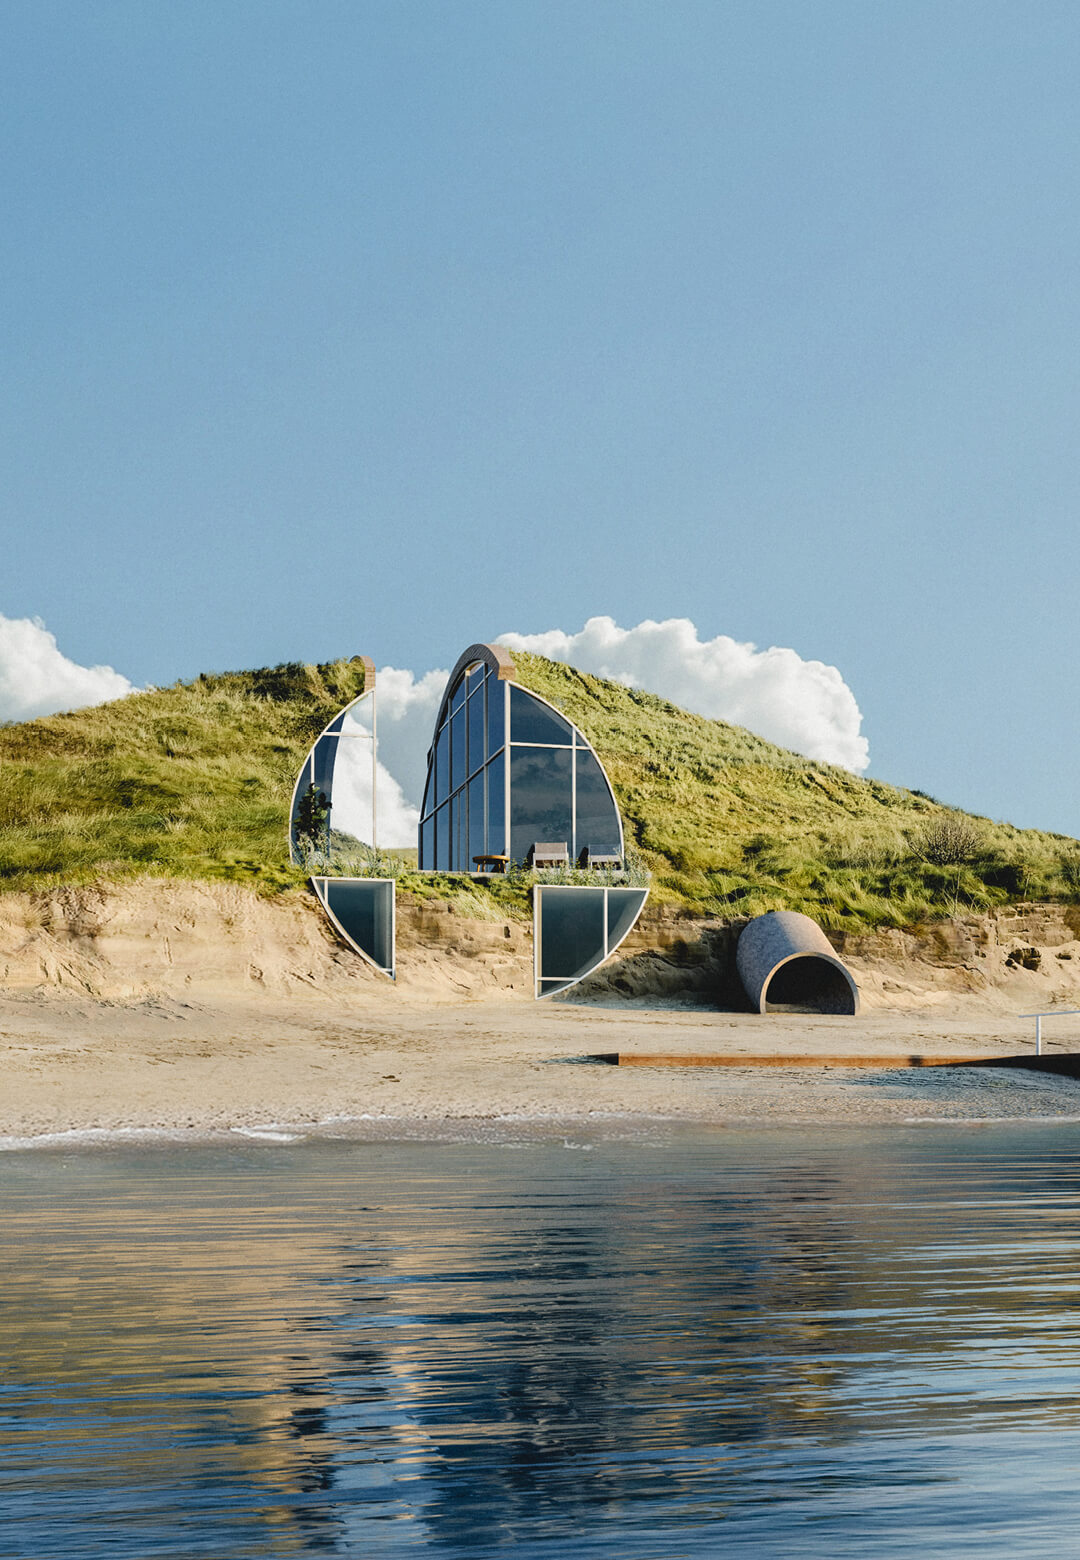 Studio Vural envisions The Dune House in Cape Cod's beachfront in Massachusetts, United States | Dune House by Studio Vural | STIRworld